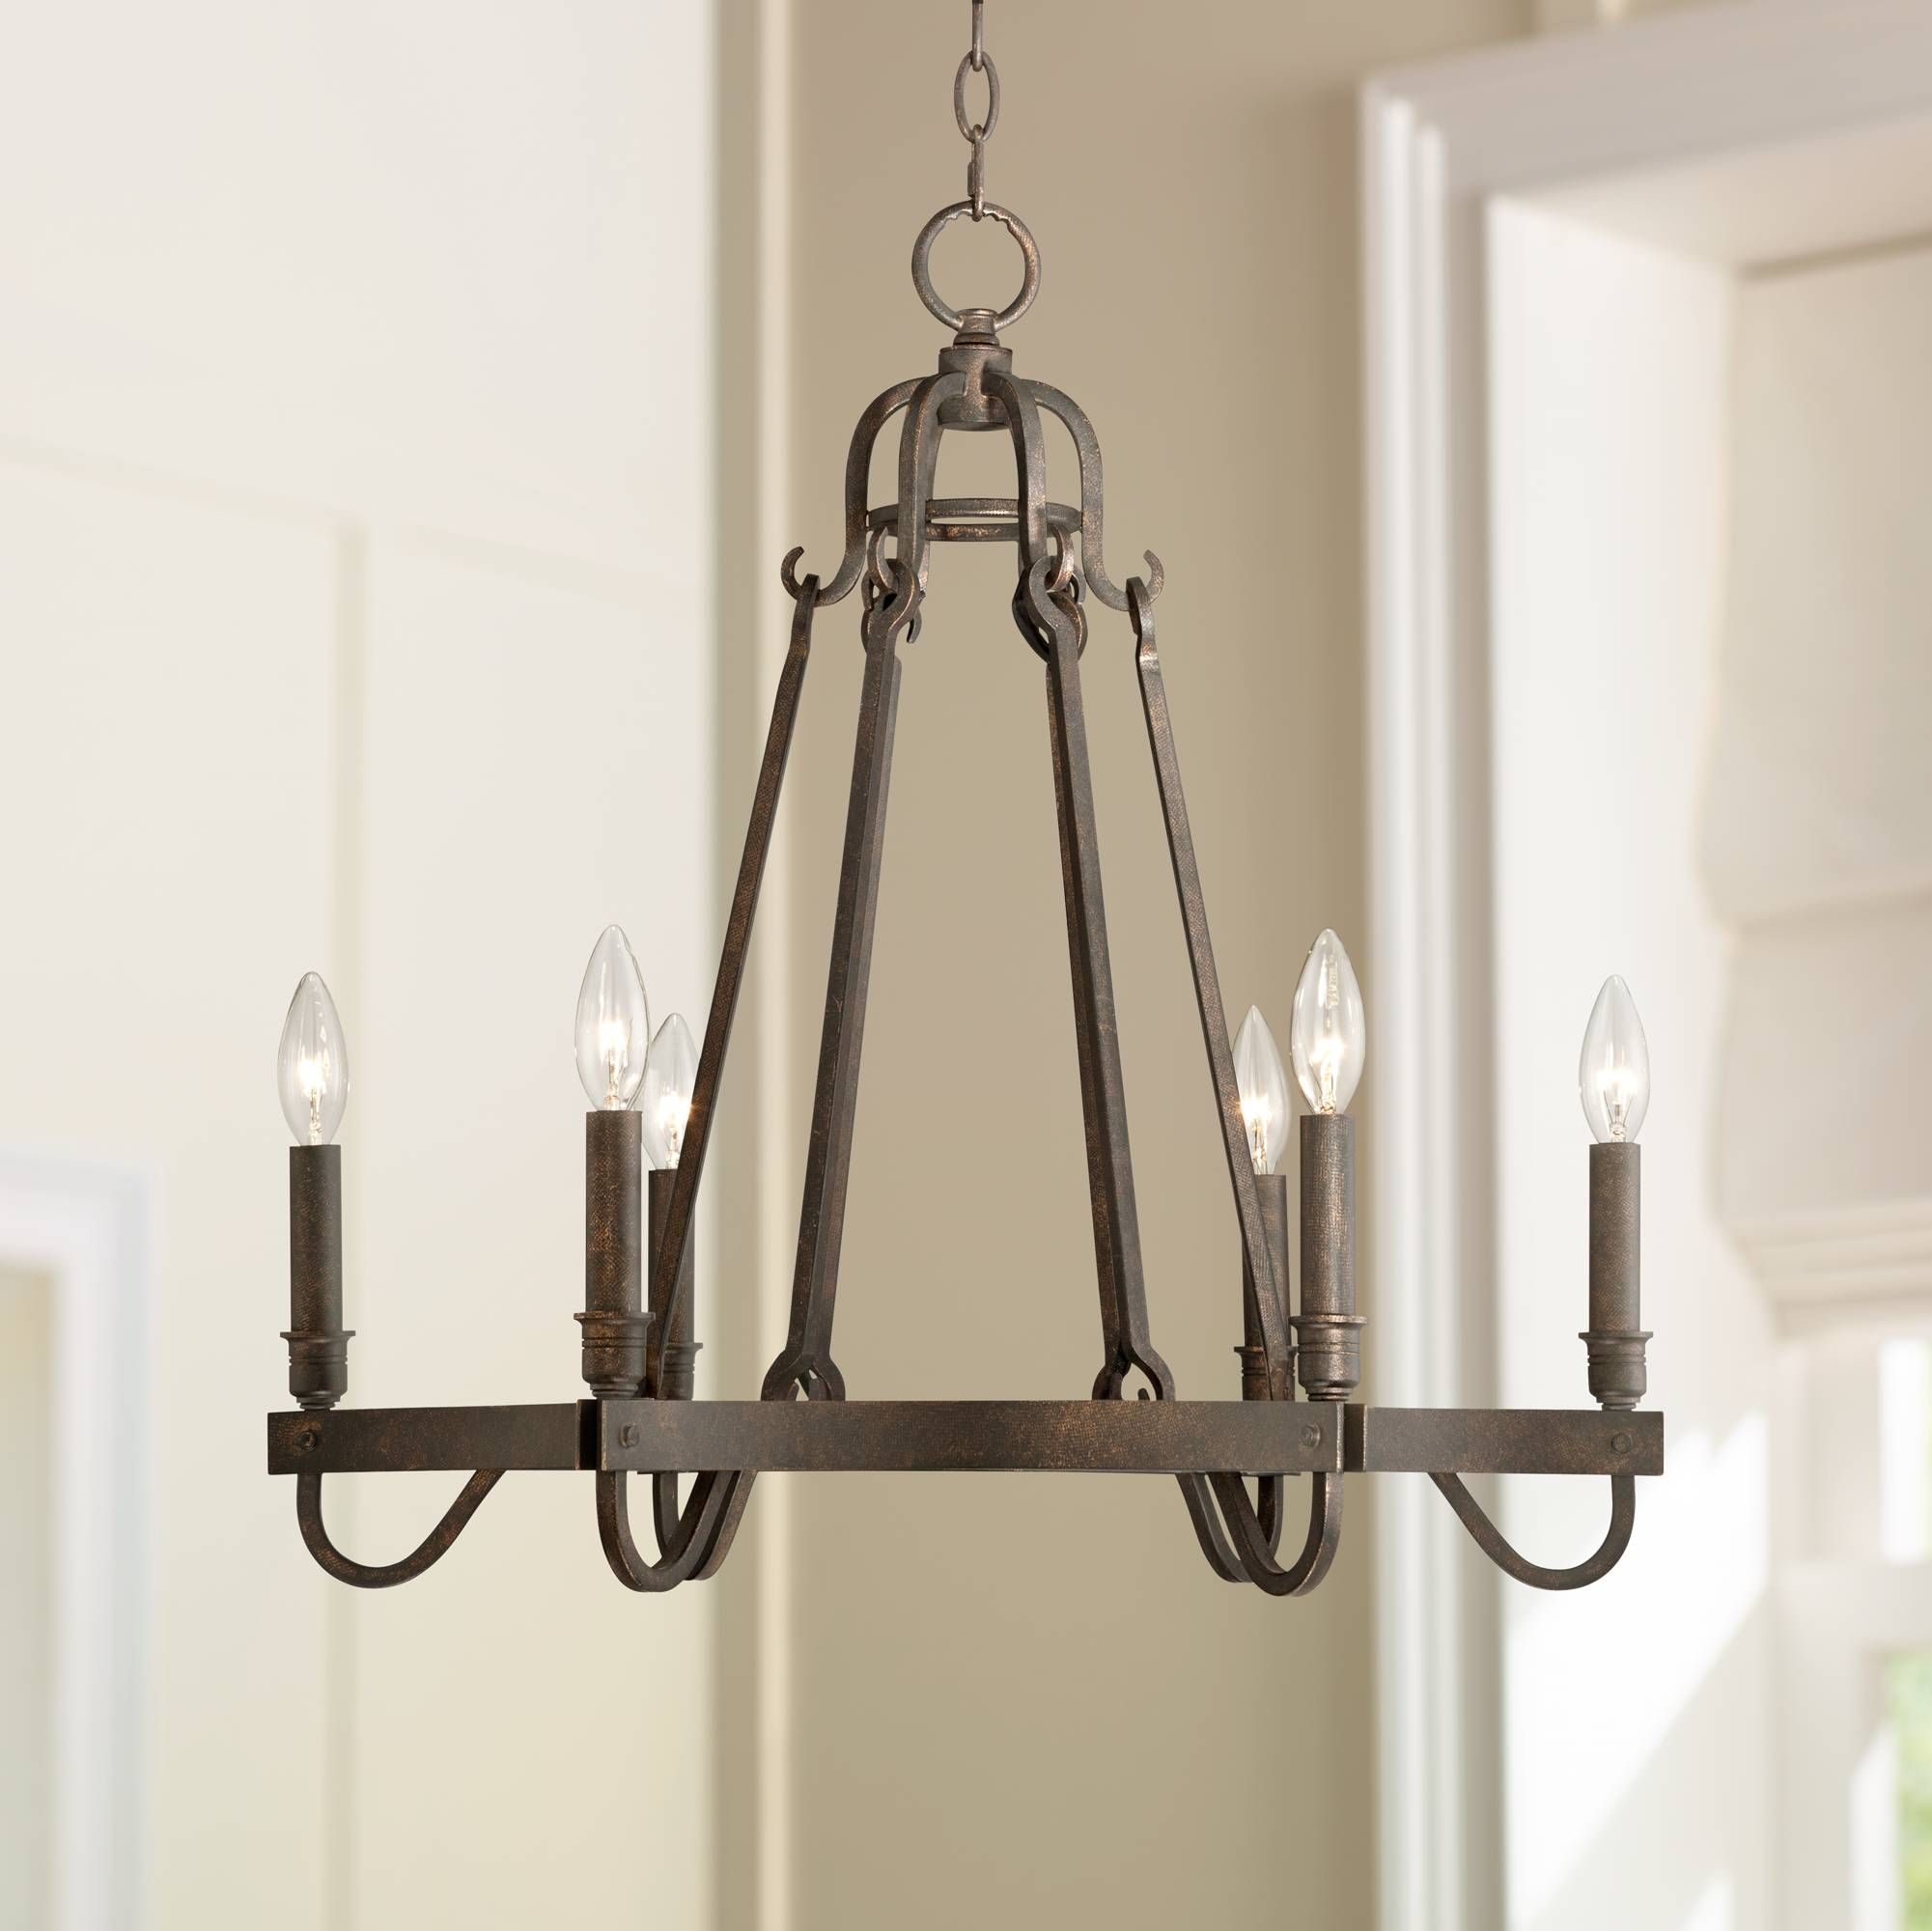 Raymore 23 1 2 Wide Rustic Bronze 6 Light Chandelier 8h743 Lamps Plus